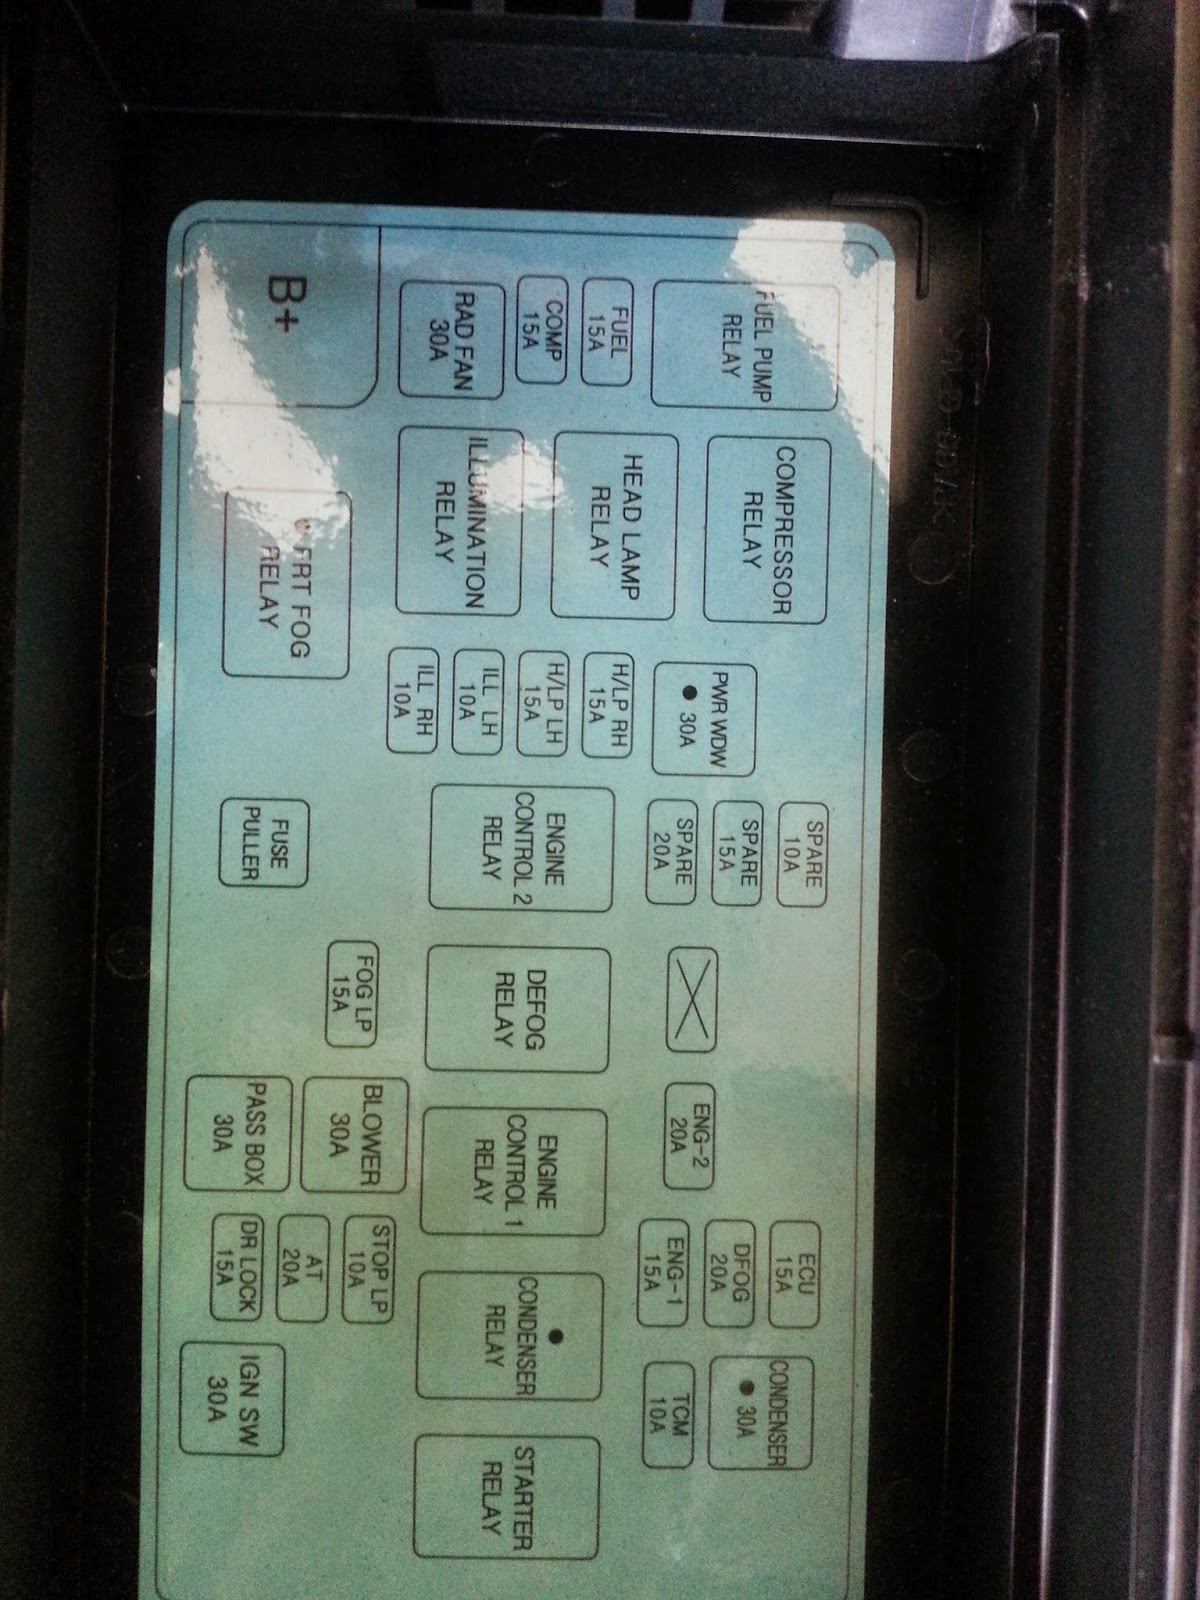 hight resolution of saga fuse diagram wiring diagram mega kancil 850 fuse box diagram kancil fuse box